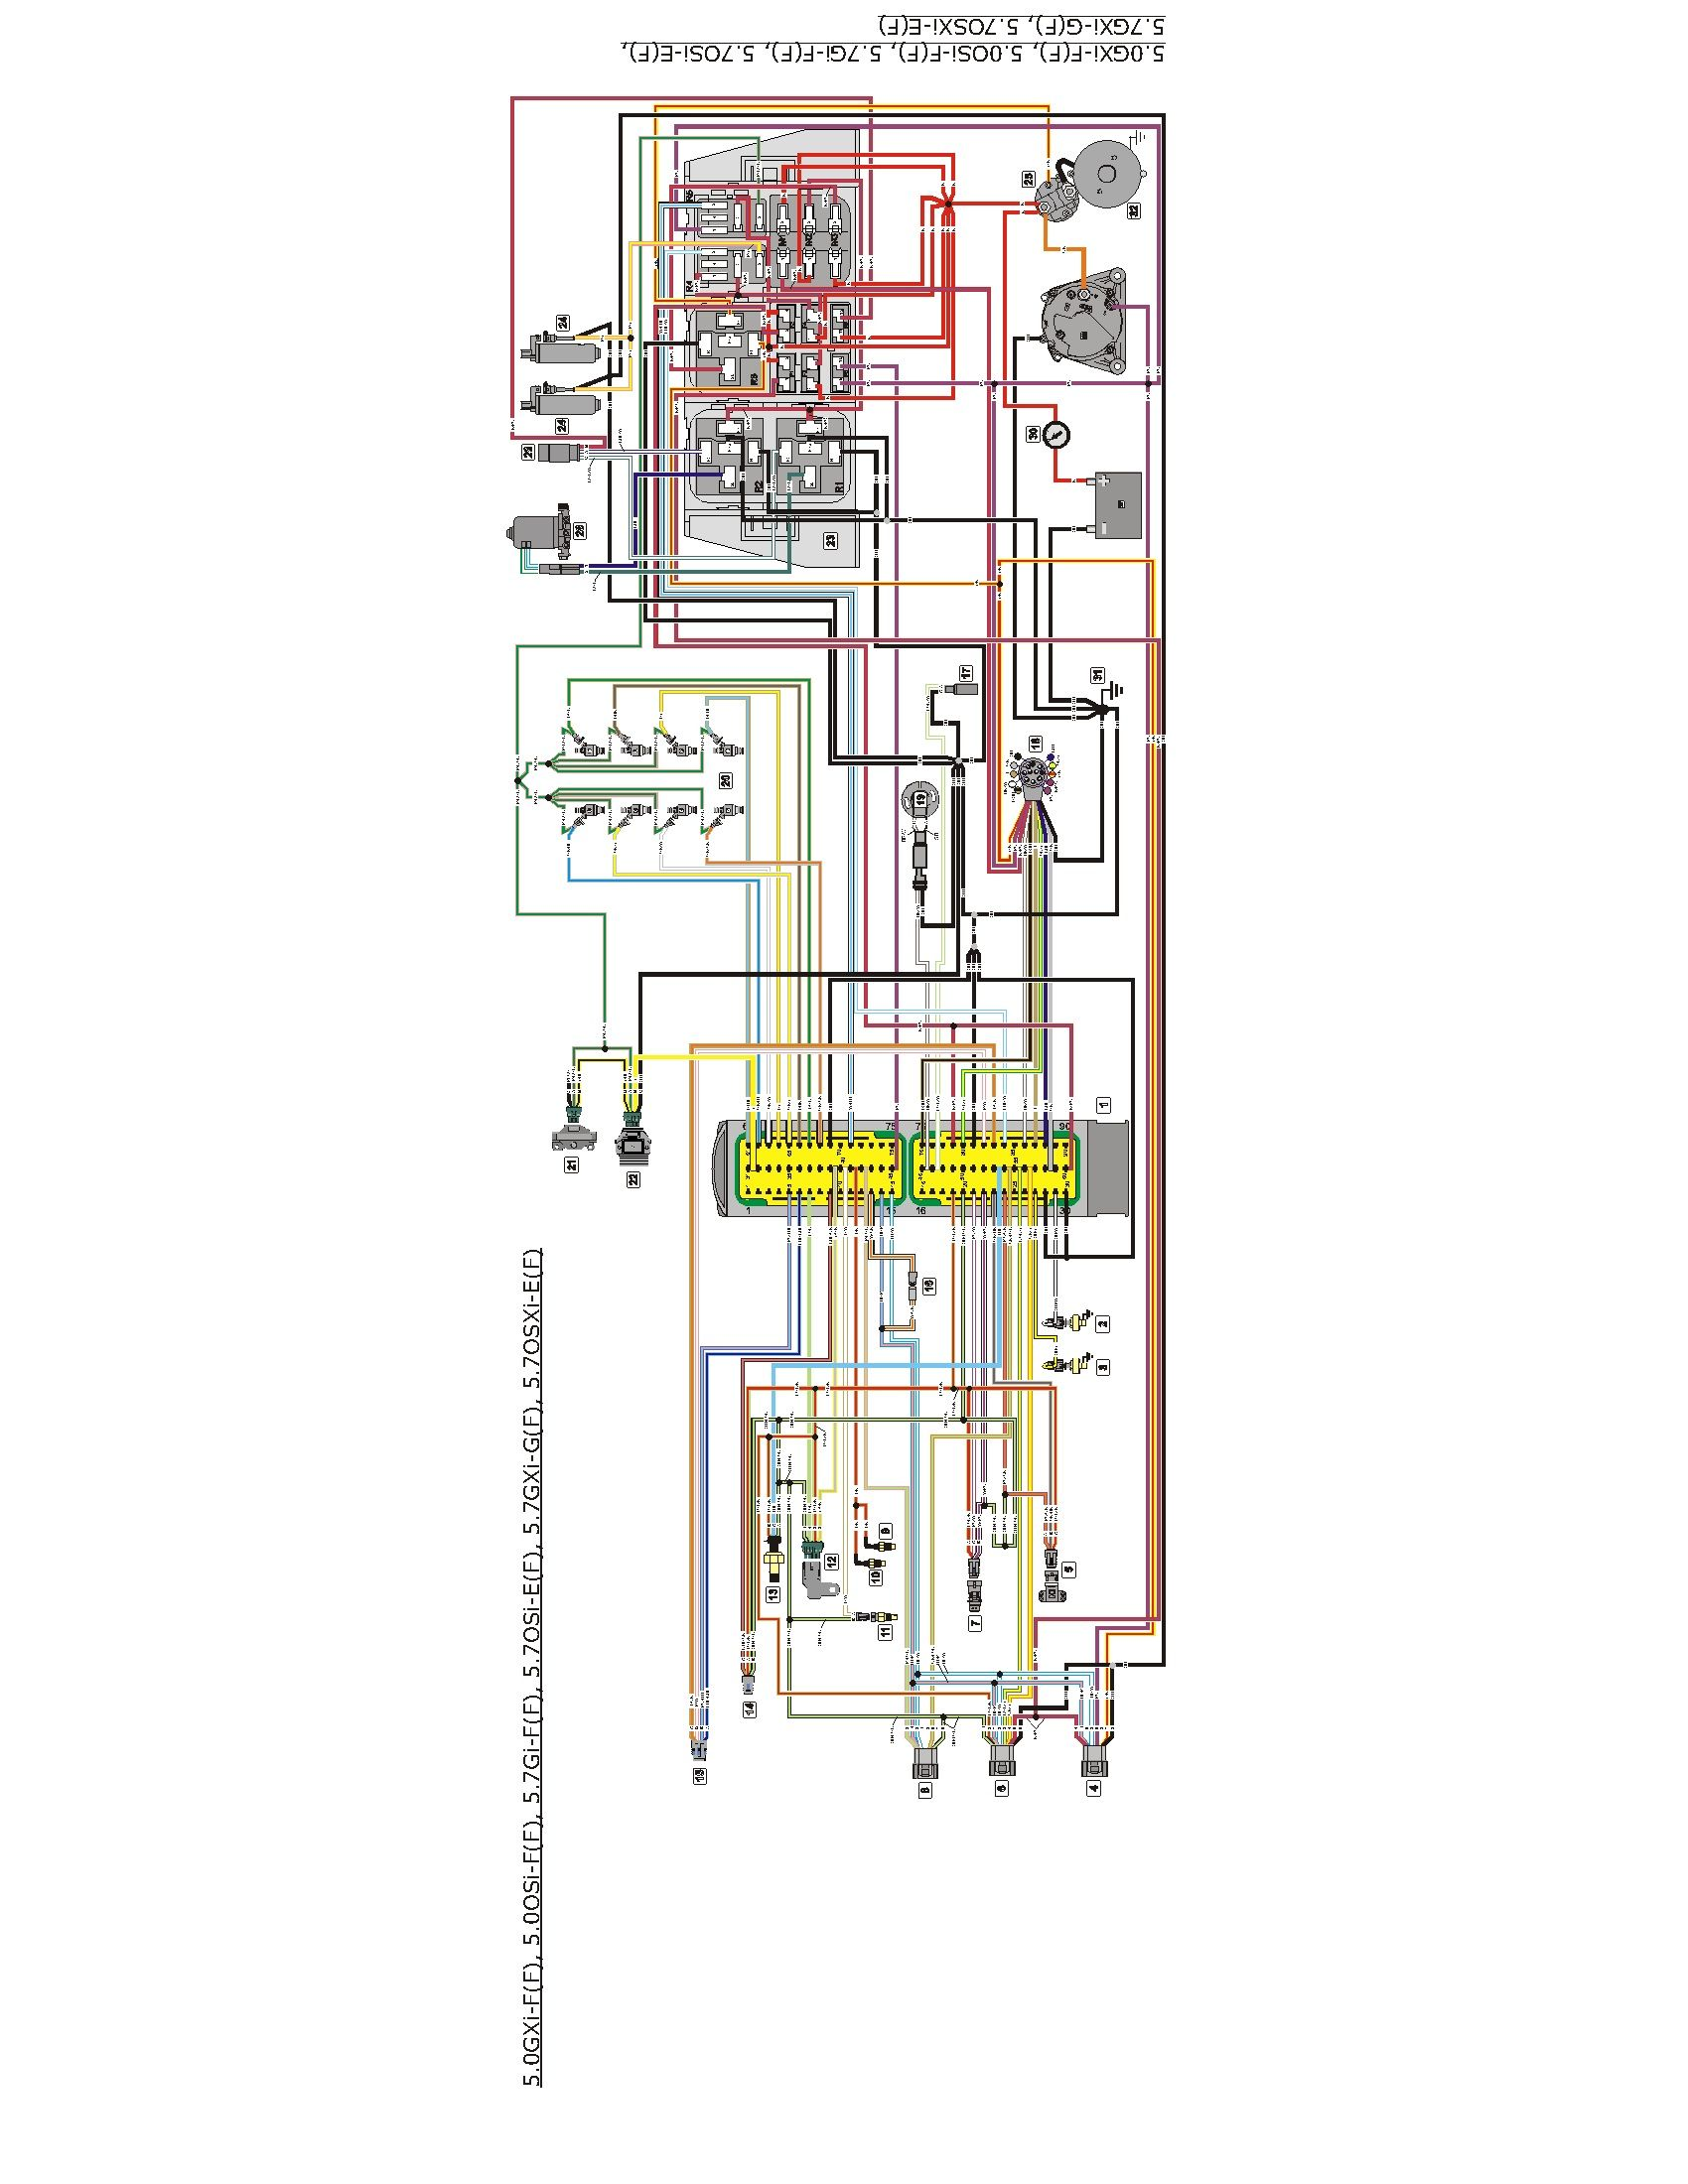 38e0106861e0fe47e508530985b32839 volvo penta 5 7 engine wiring diagram yate pinterest volvo volvo penta wiring harness diagram at sewacar.co